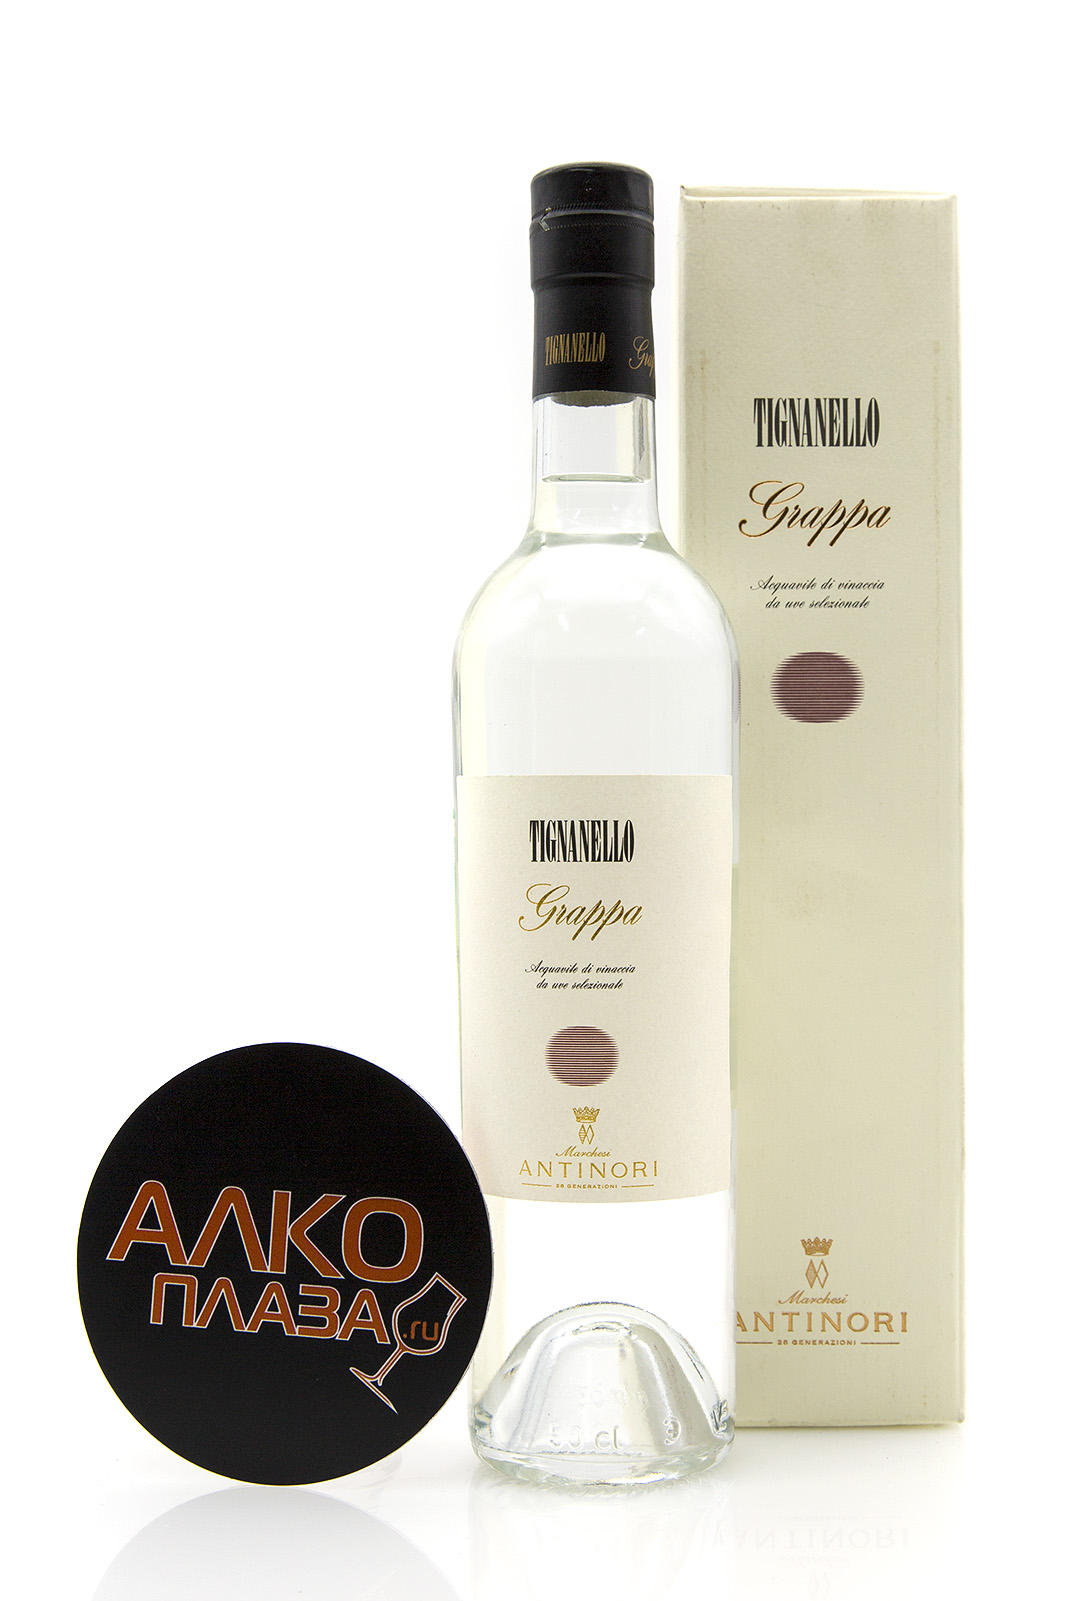 Grappa Tignanello Граппа Тиньянелло Антинори